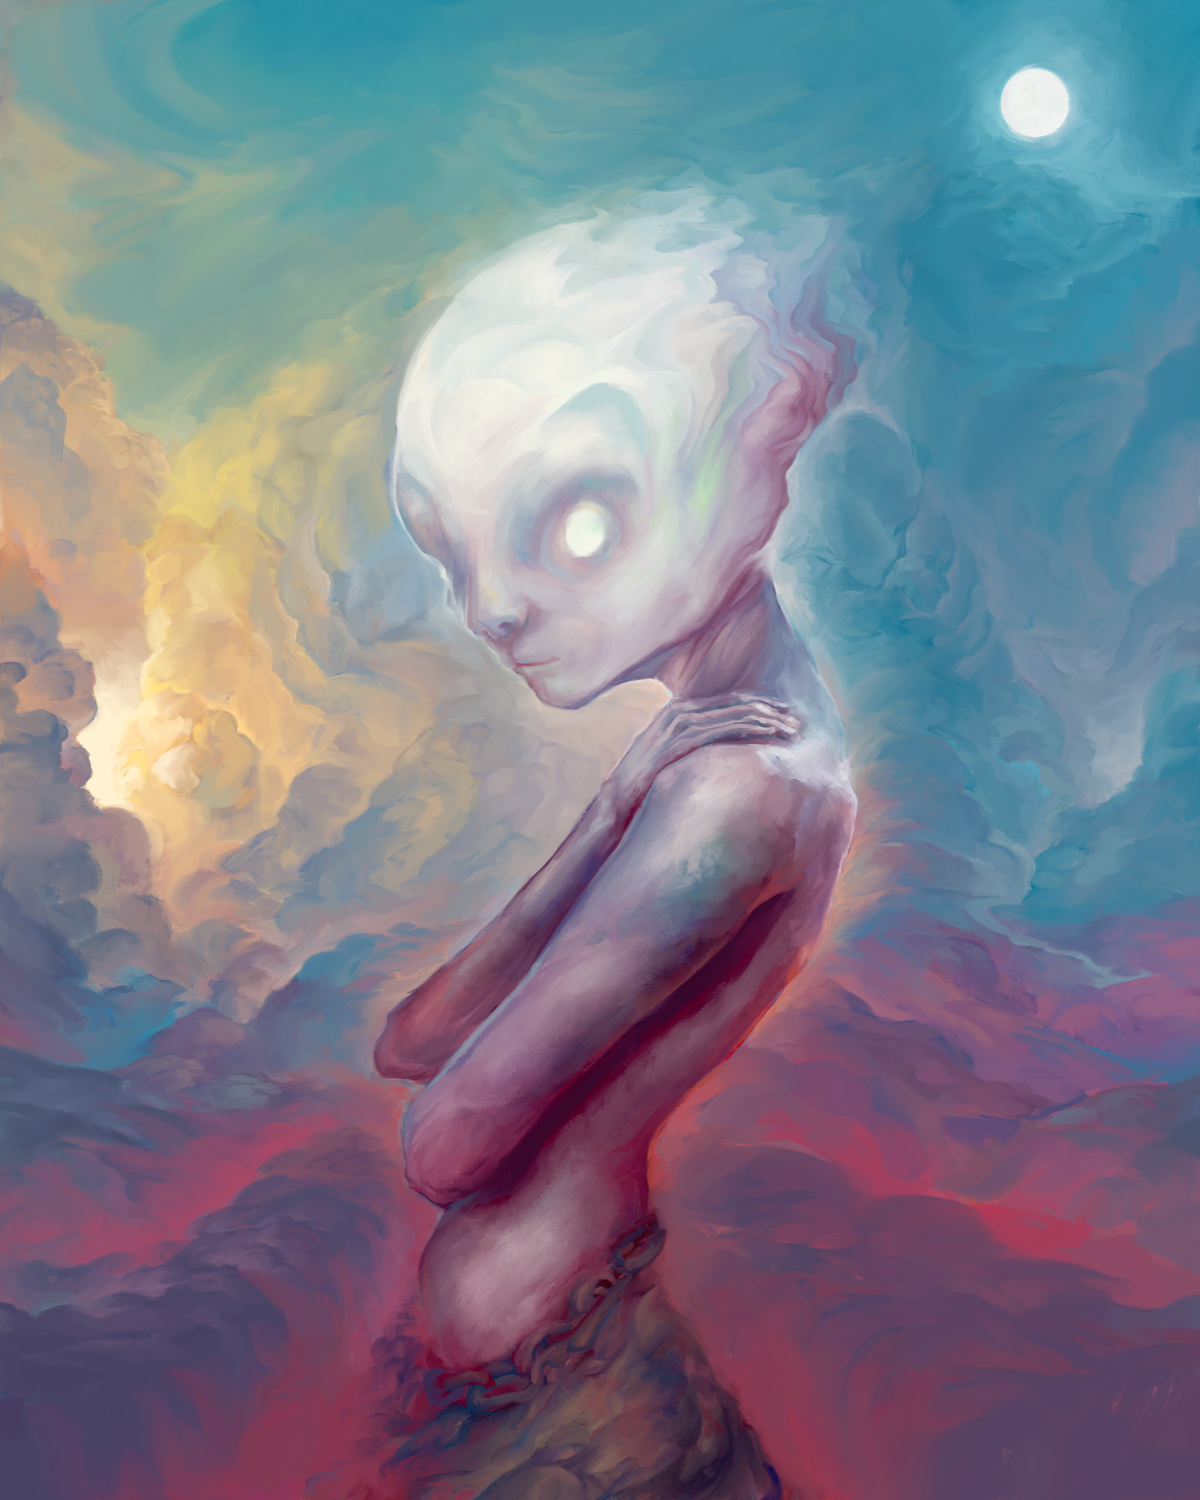 Moon Child Artwork by Maxwell Crabill